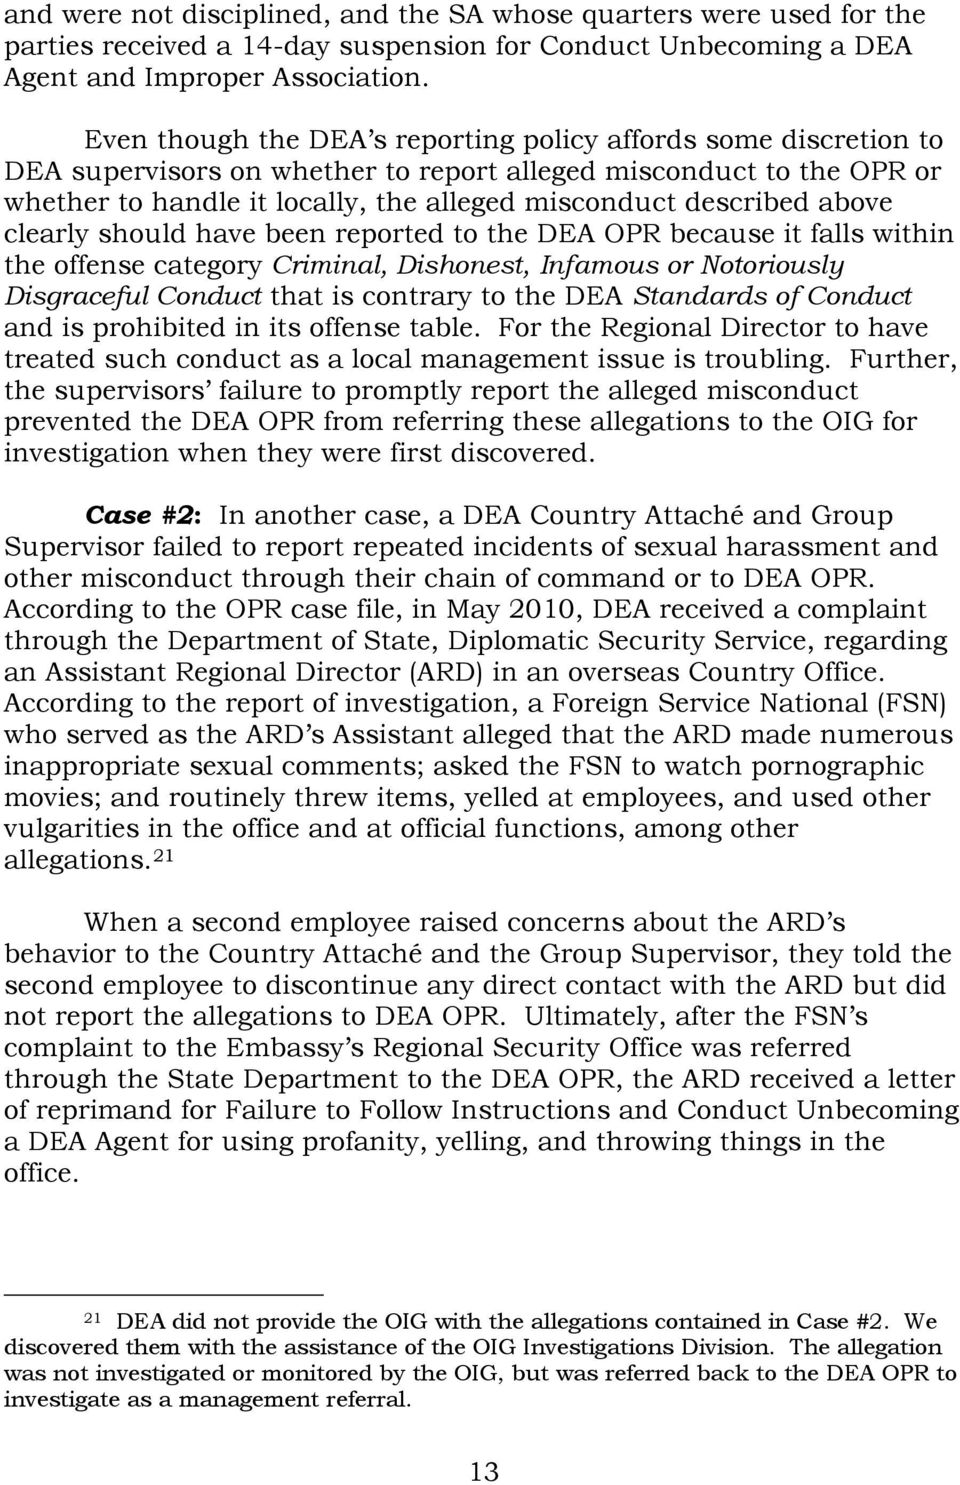 above clearly should have been reported to the DEA OPR because it falls within the offense category Criminal, Dishonest, Infamous or Notoriously Disgraceful Conduct that is contrary to the DEA